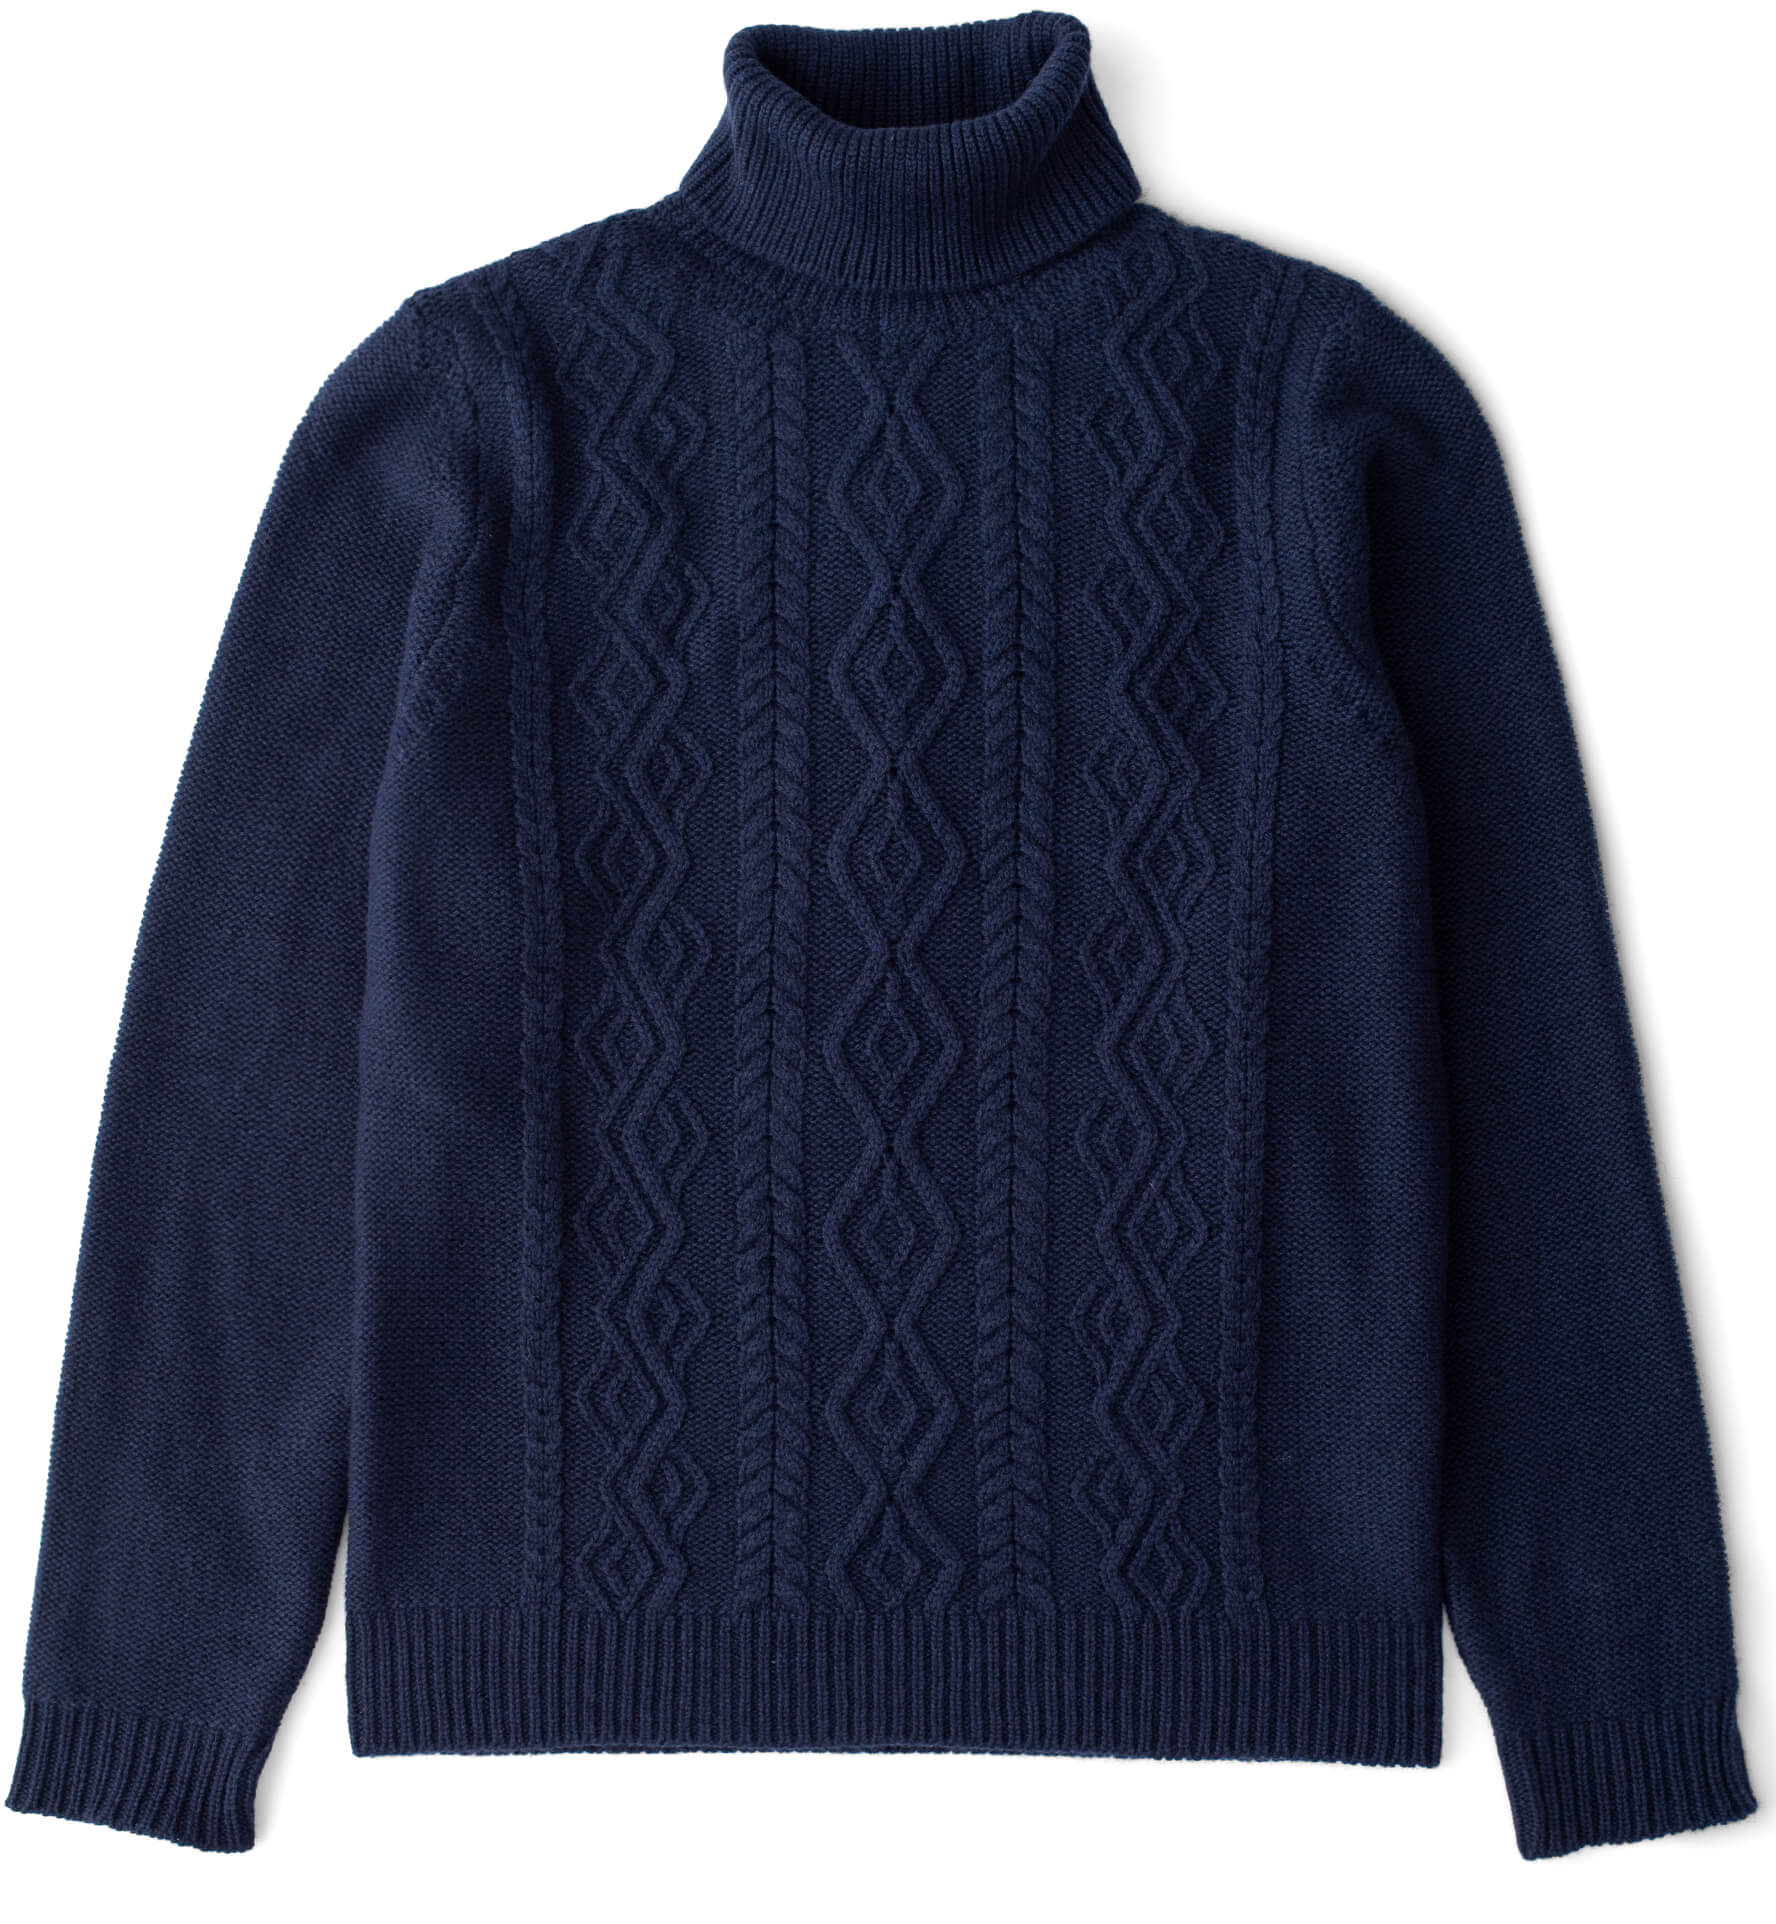 Zoom Image of Navy Wool and Cashmere Aran Rollneck Sweater